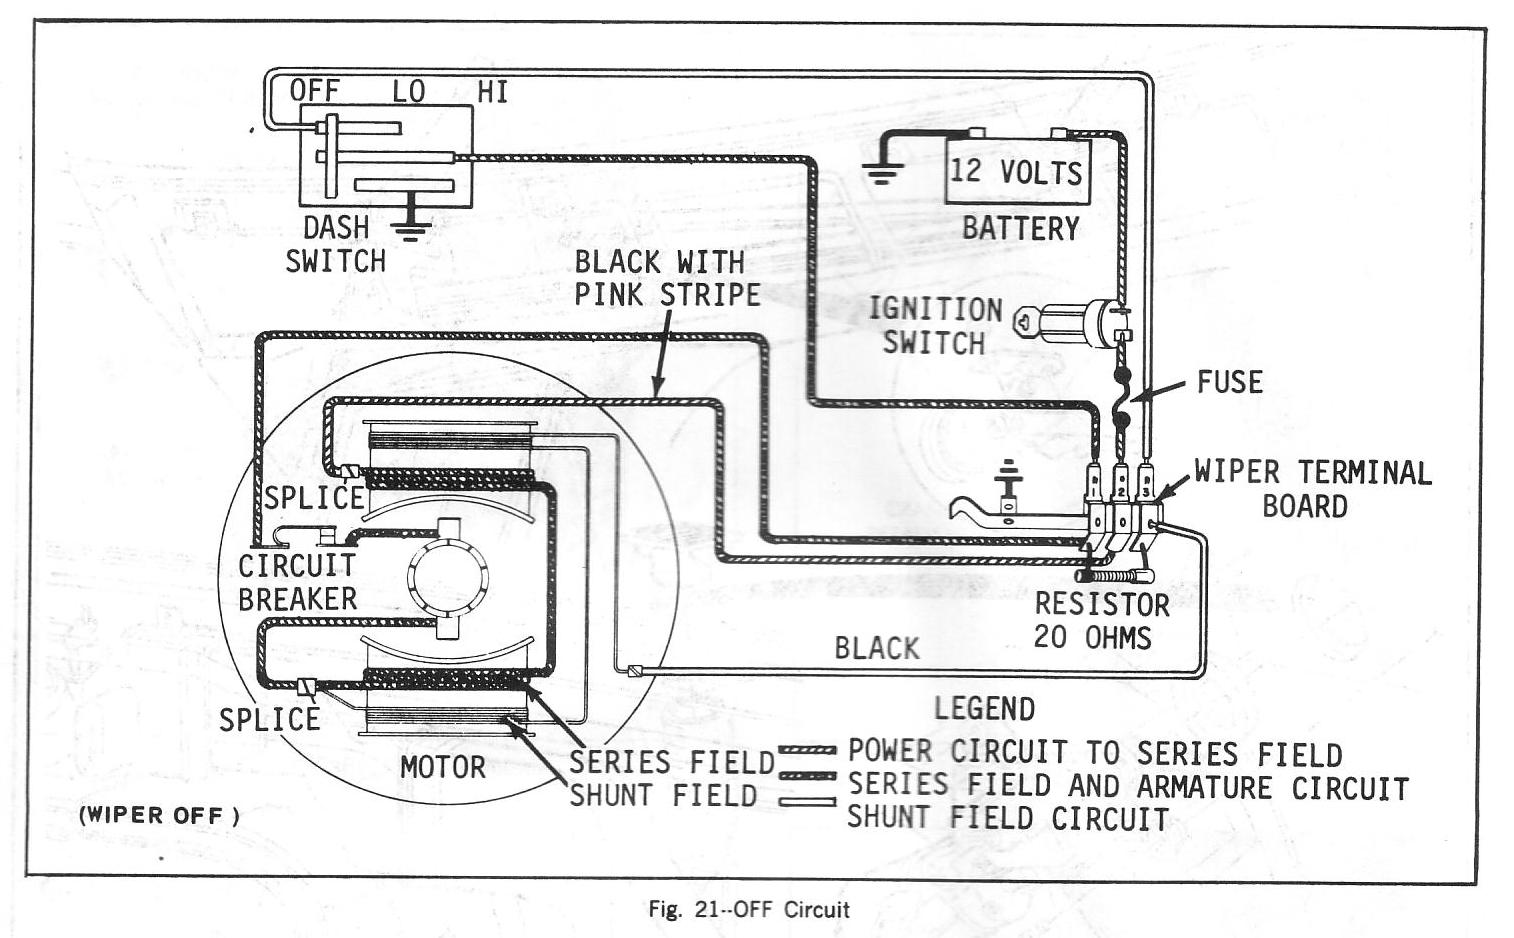 hight resolution of 1974 vw wiper motor wiring diagram